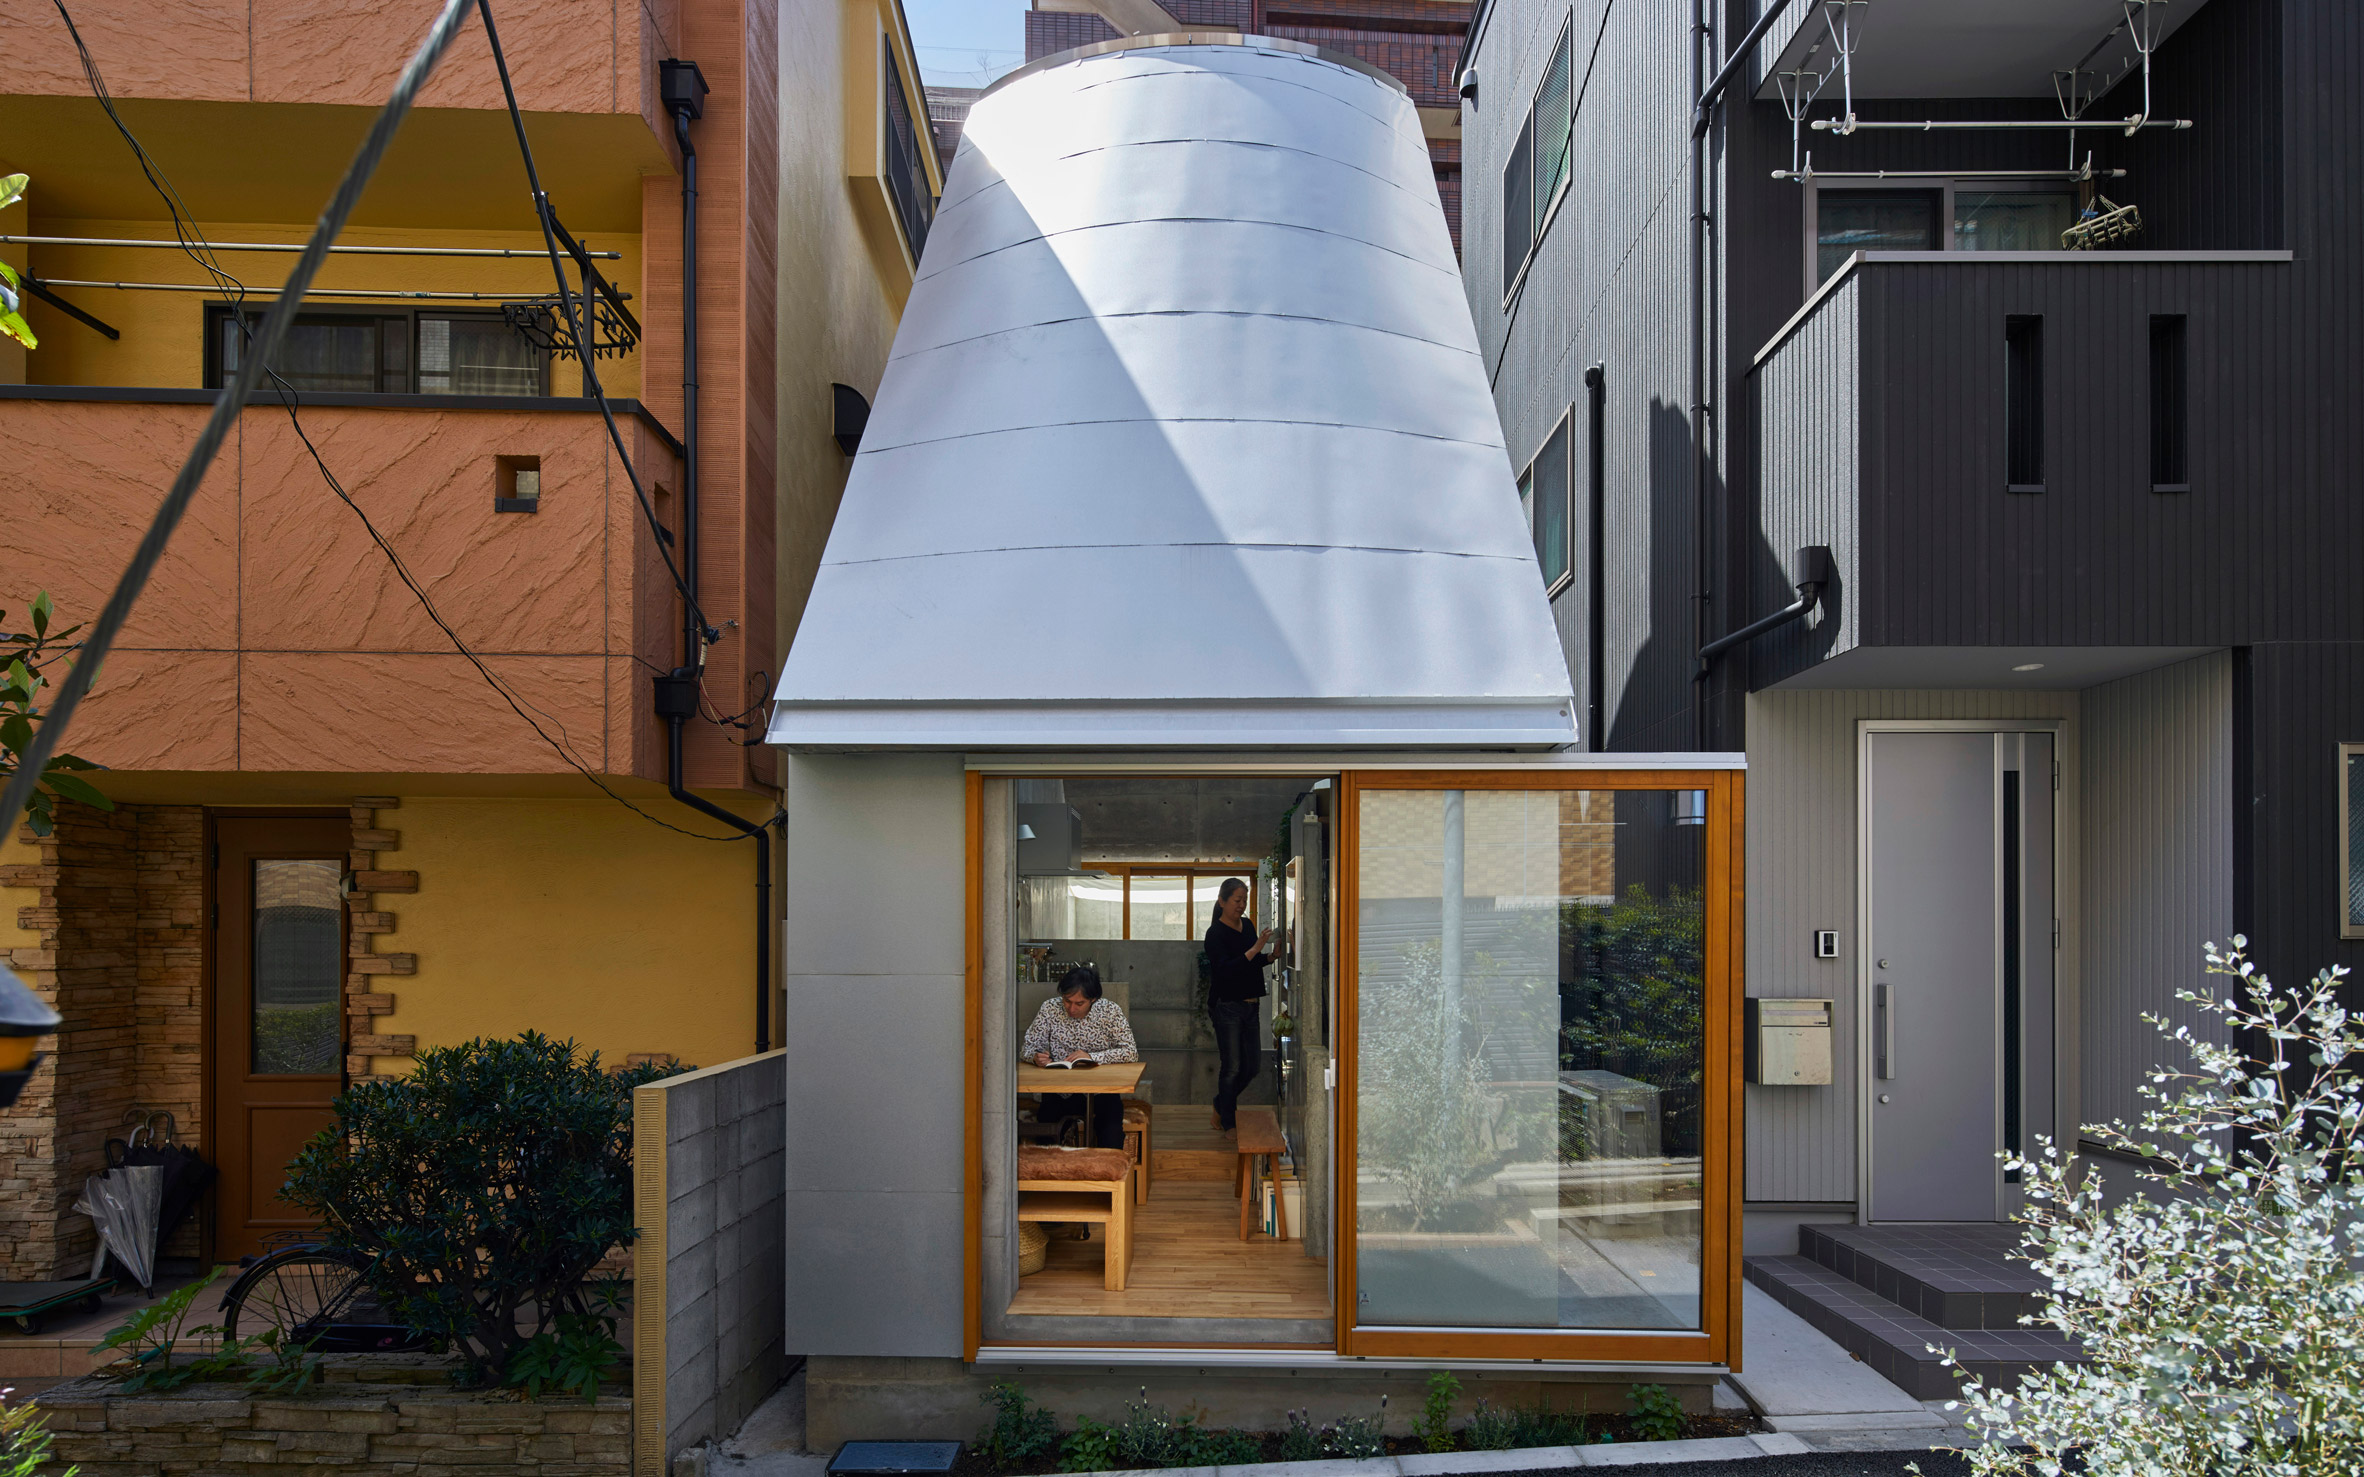 Tiny home in Japan shows how little space we really need